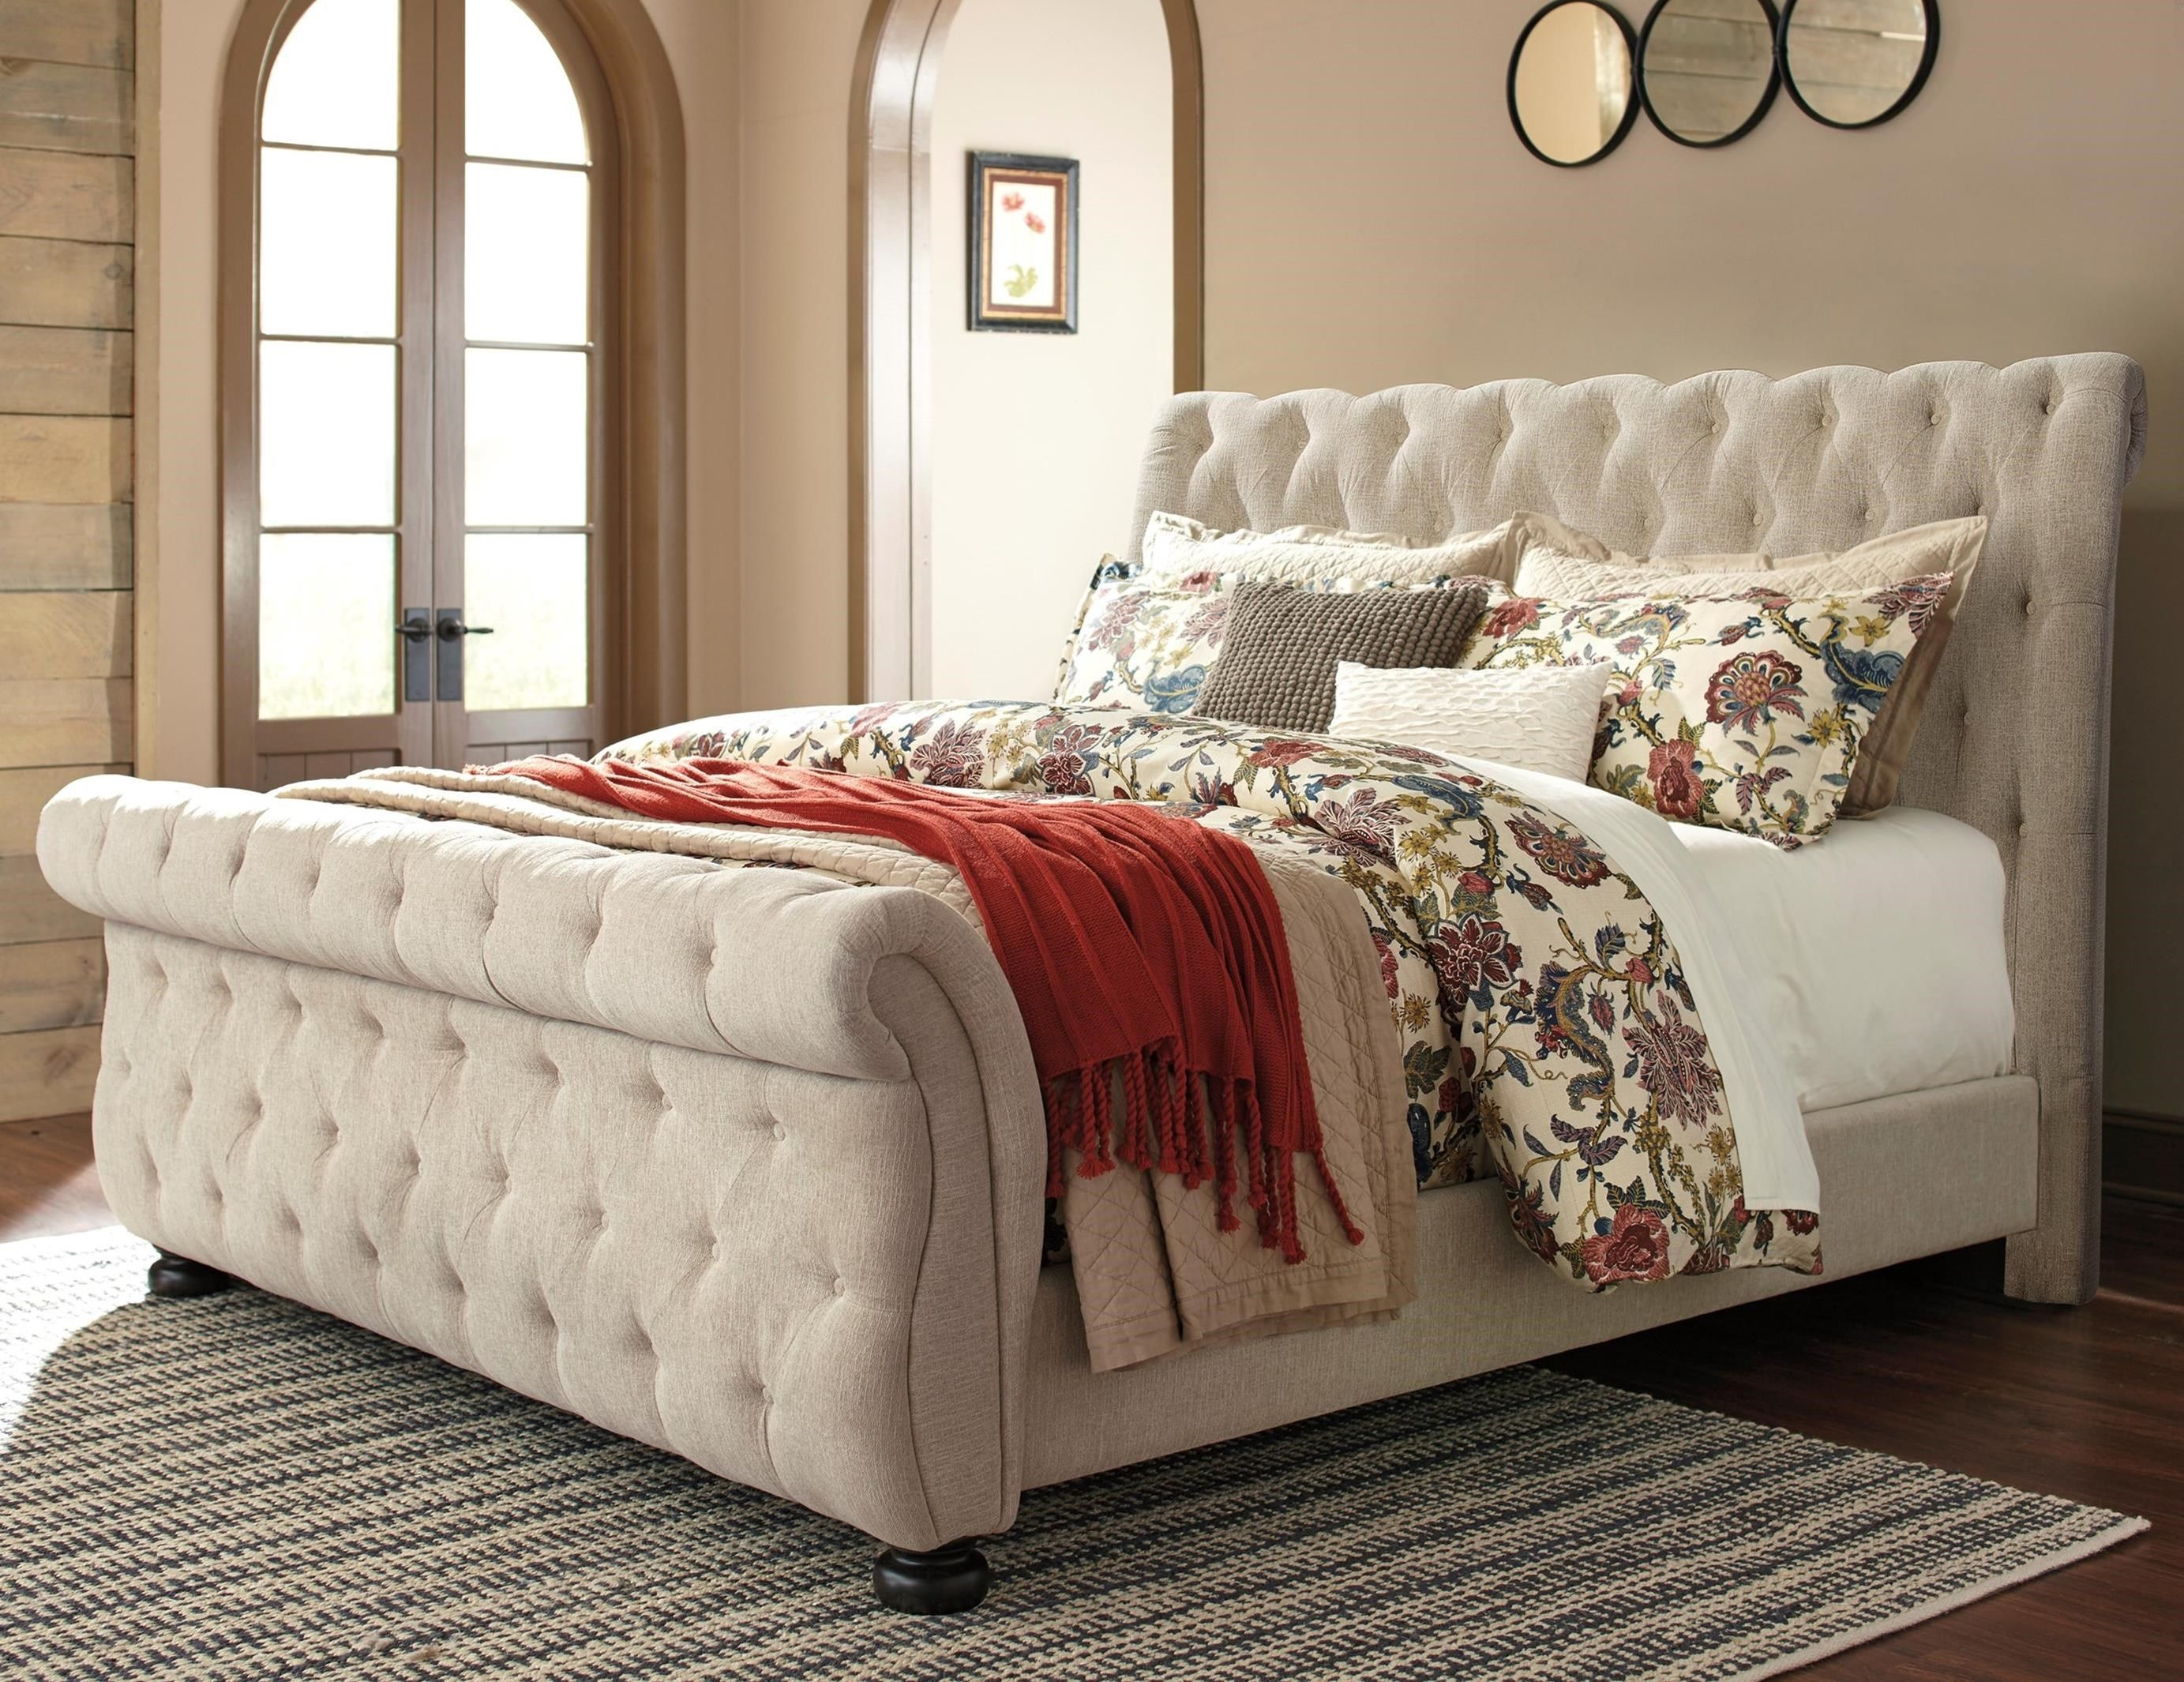 Willenburg King Upholstered Sleigh Bed By Signature Design By Ashley At Story King Upholstered Bed Upholstered Beds Queen Upholstered Bed